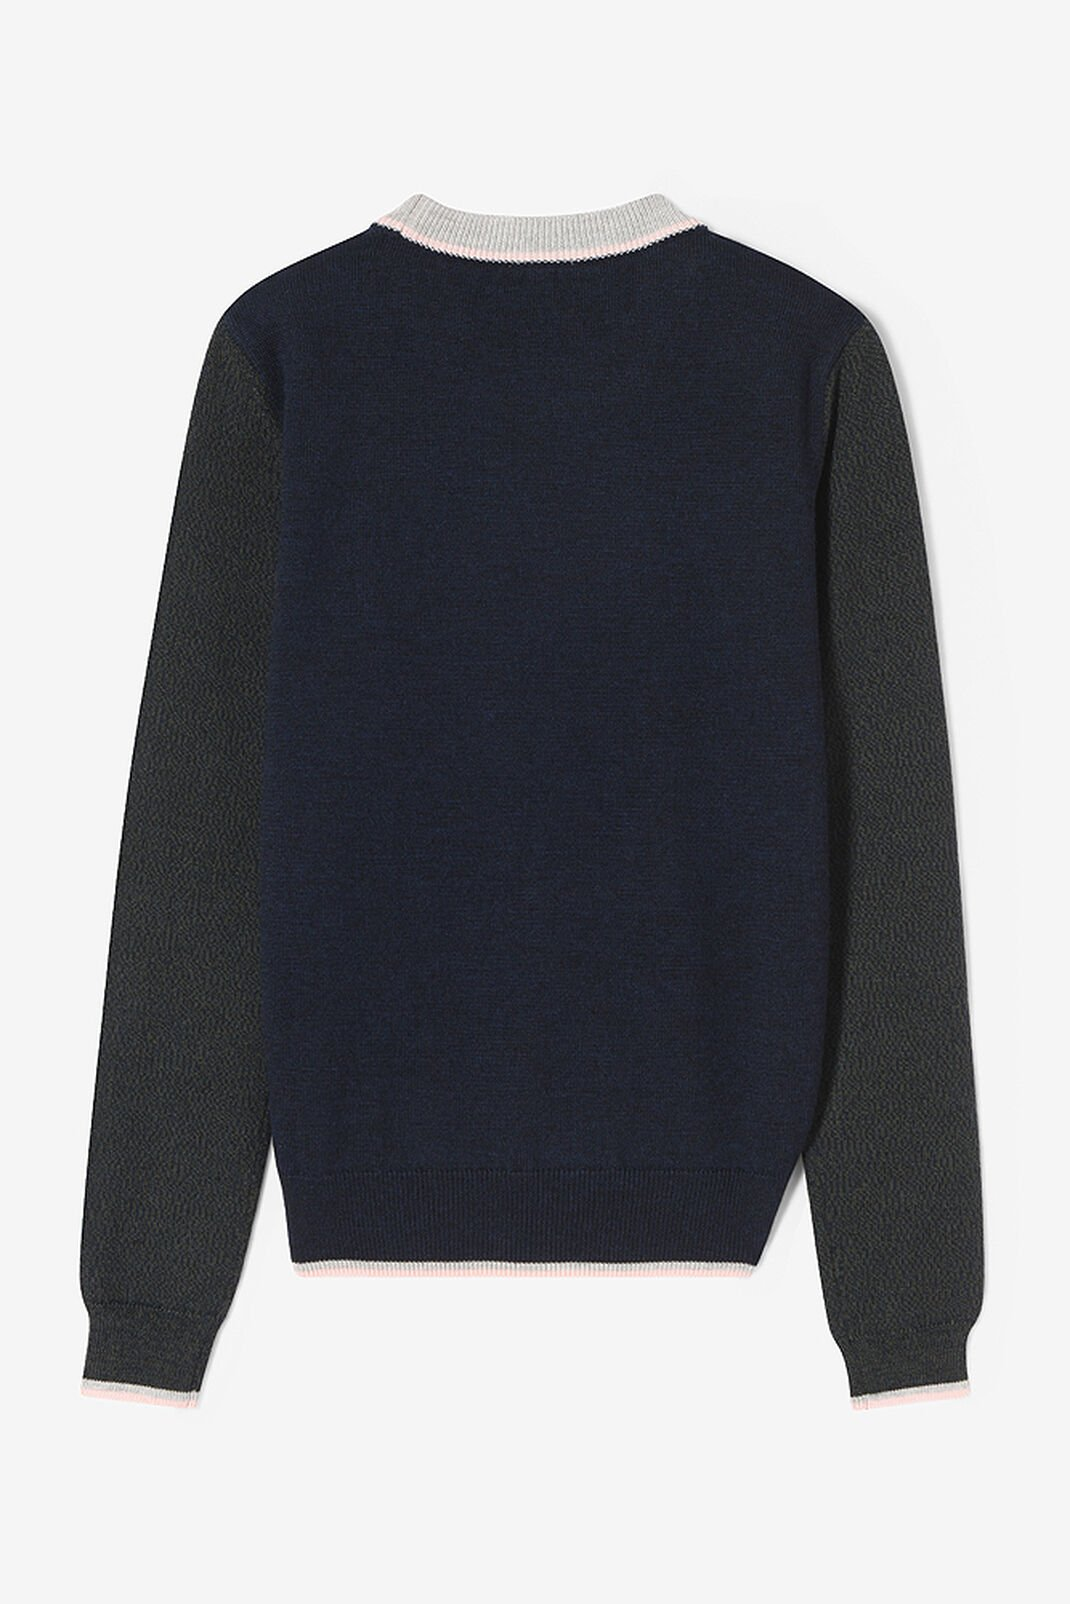 NAVY BLUE Tiger crest sweater for women KENZO